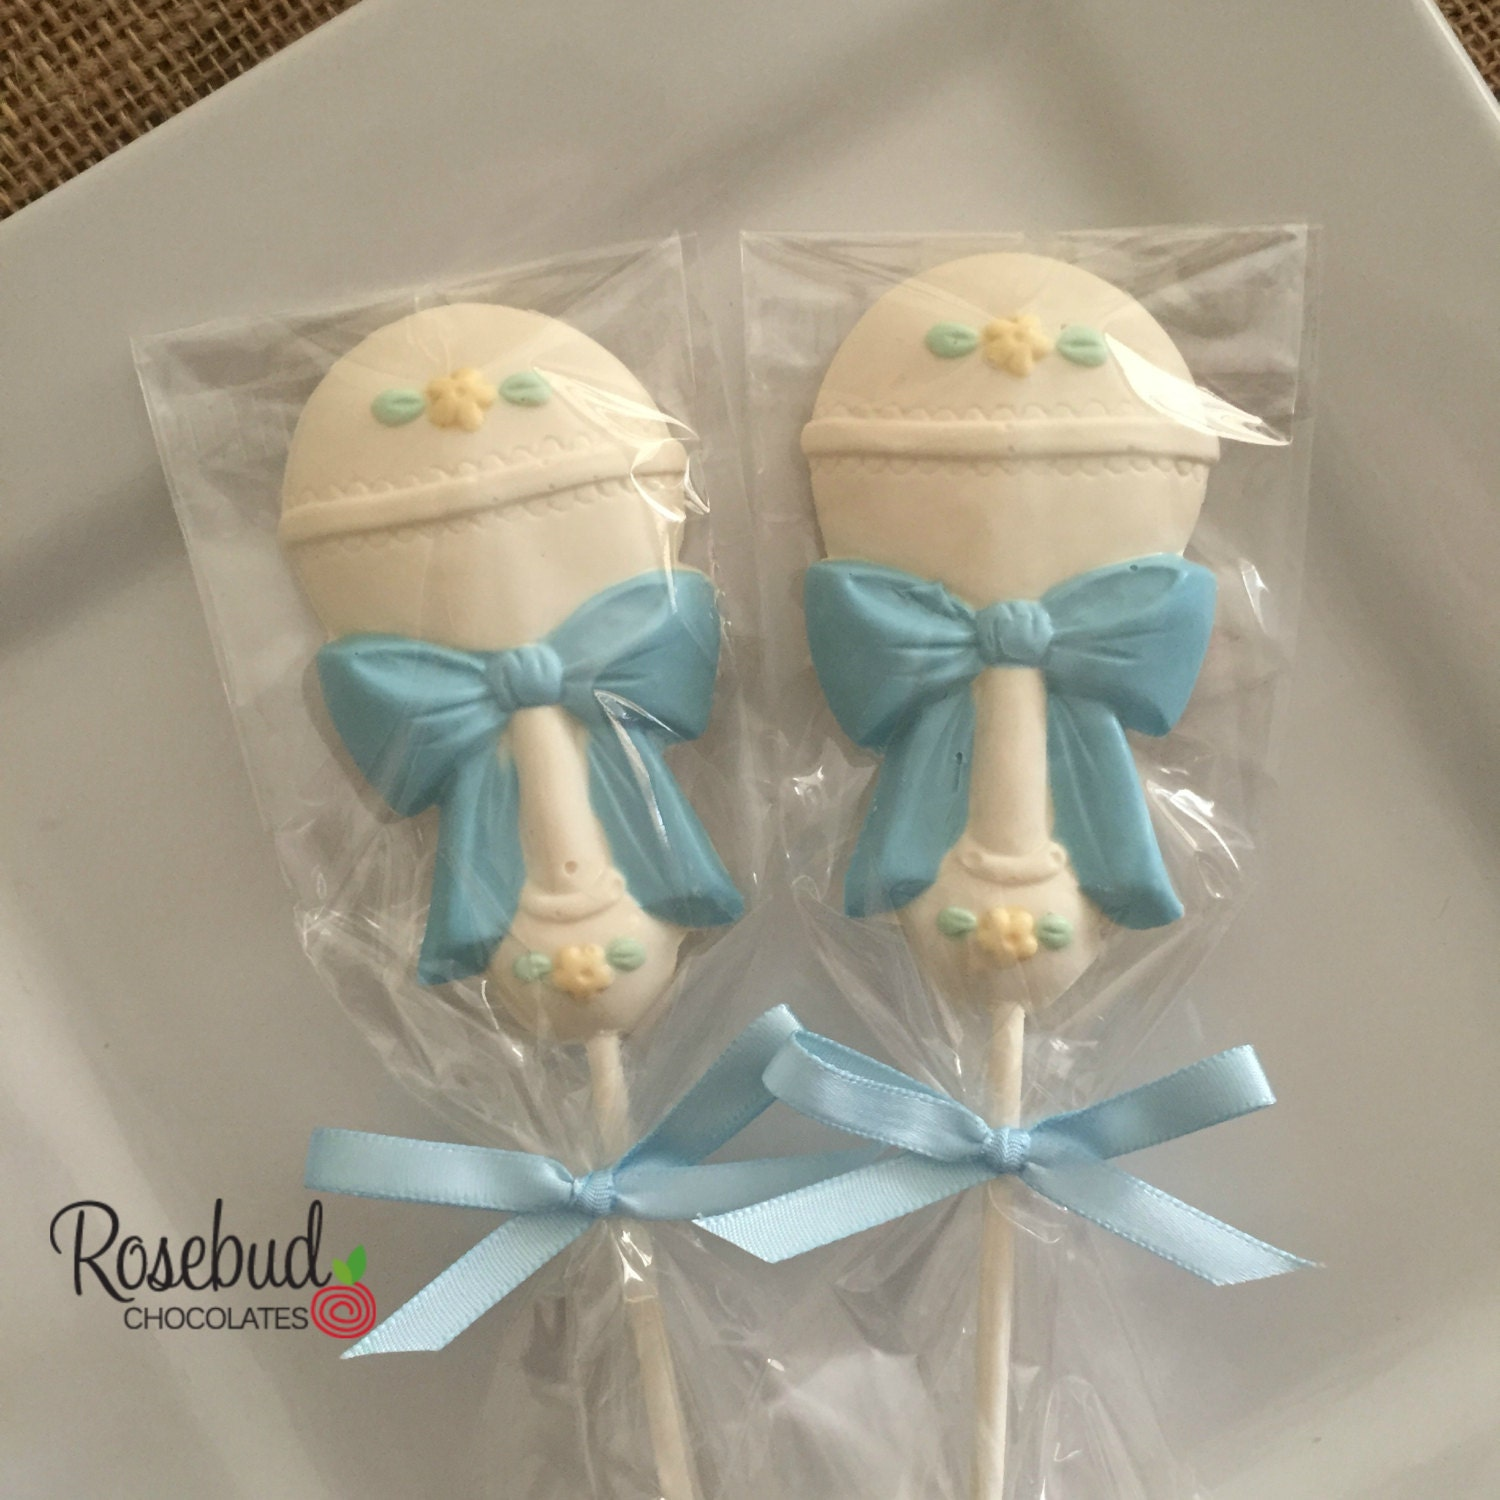 Baby Shower Favors Chocolate Baby Rattle Lollipops Dessert